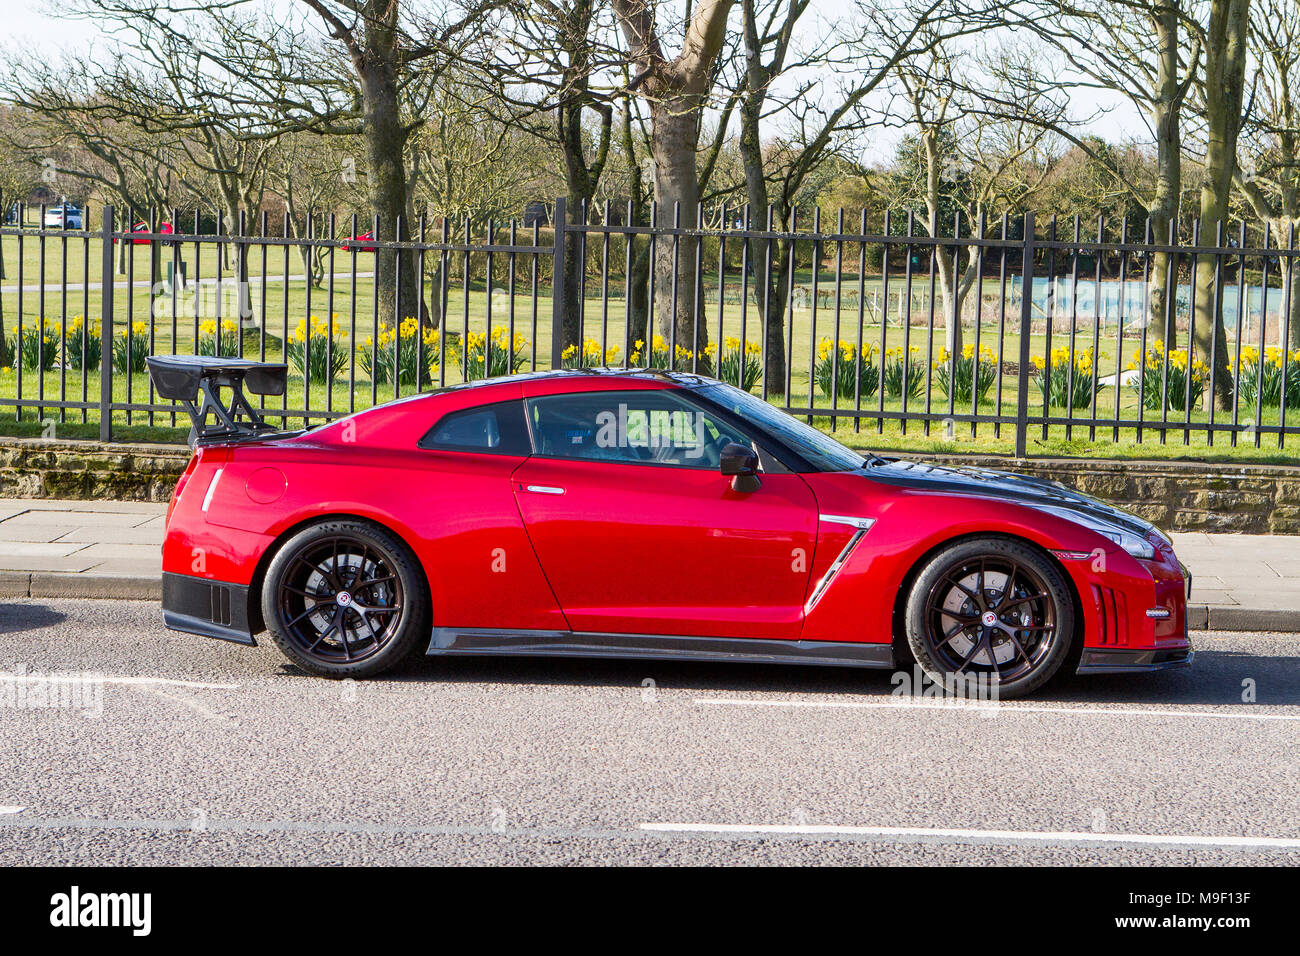 Merseyside, UK, 25 Mar 2018. Supercars of the North West 1st Event of the Season. 25th March 2018.  Organisers Gage and Thomas Bleakley said they are expecting over 200 cars to turn up to the event which is held in the Victoria park gardens in Southport, Merseyside.  Vehicles of all ages from British Mini classics to full V8 American muscle cars roar into Southport for this show event which brings thousands of visitors to the seaside resort.  Credit: Cernan Elias/Alamy Live News - Stock Image